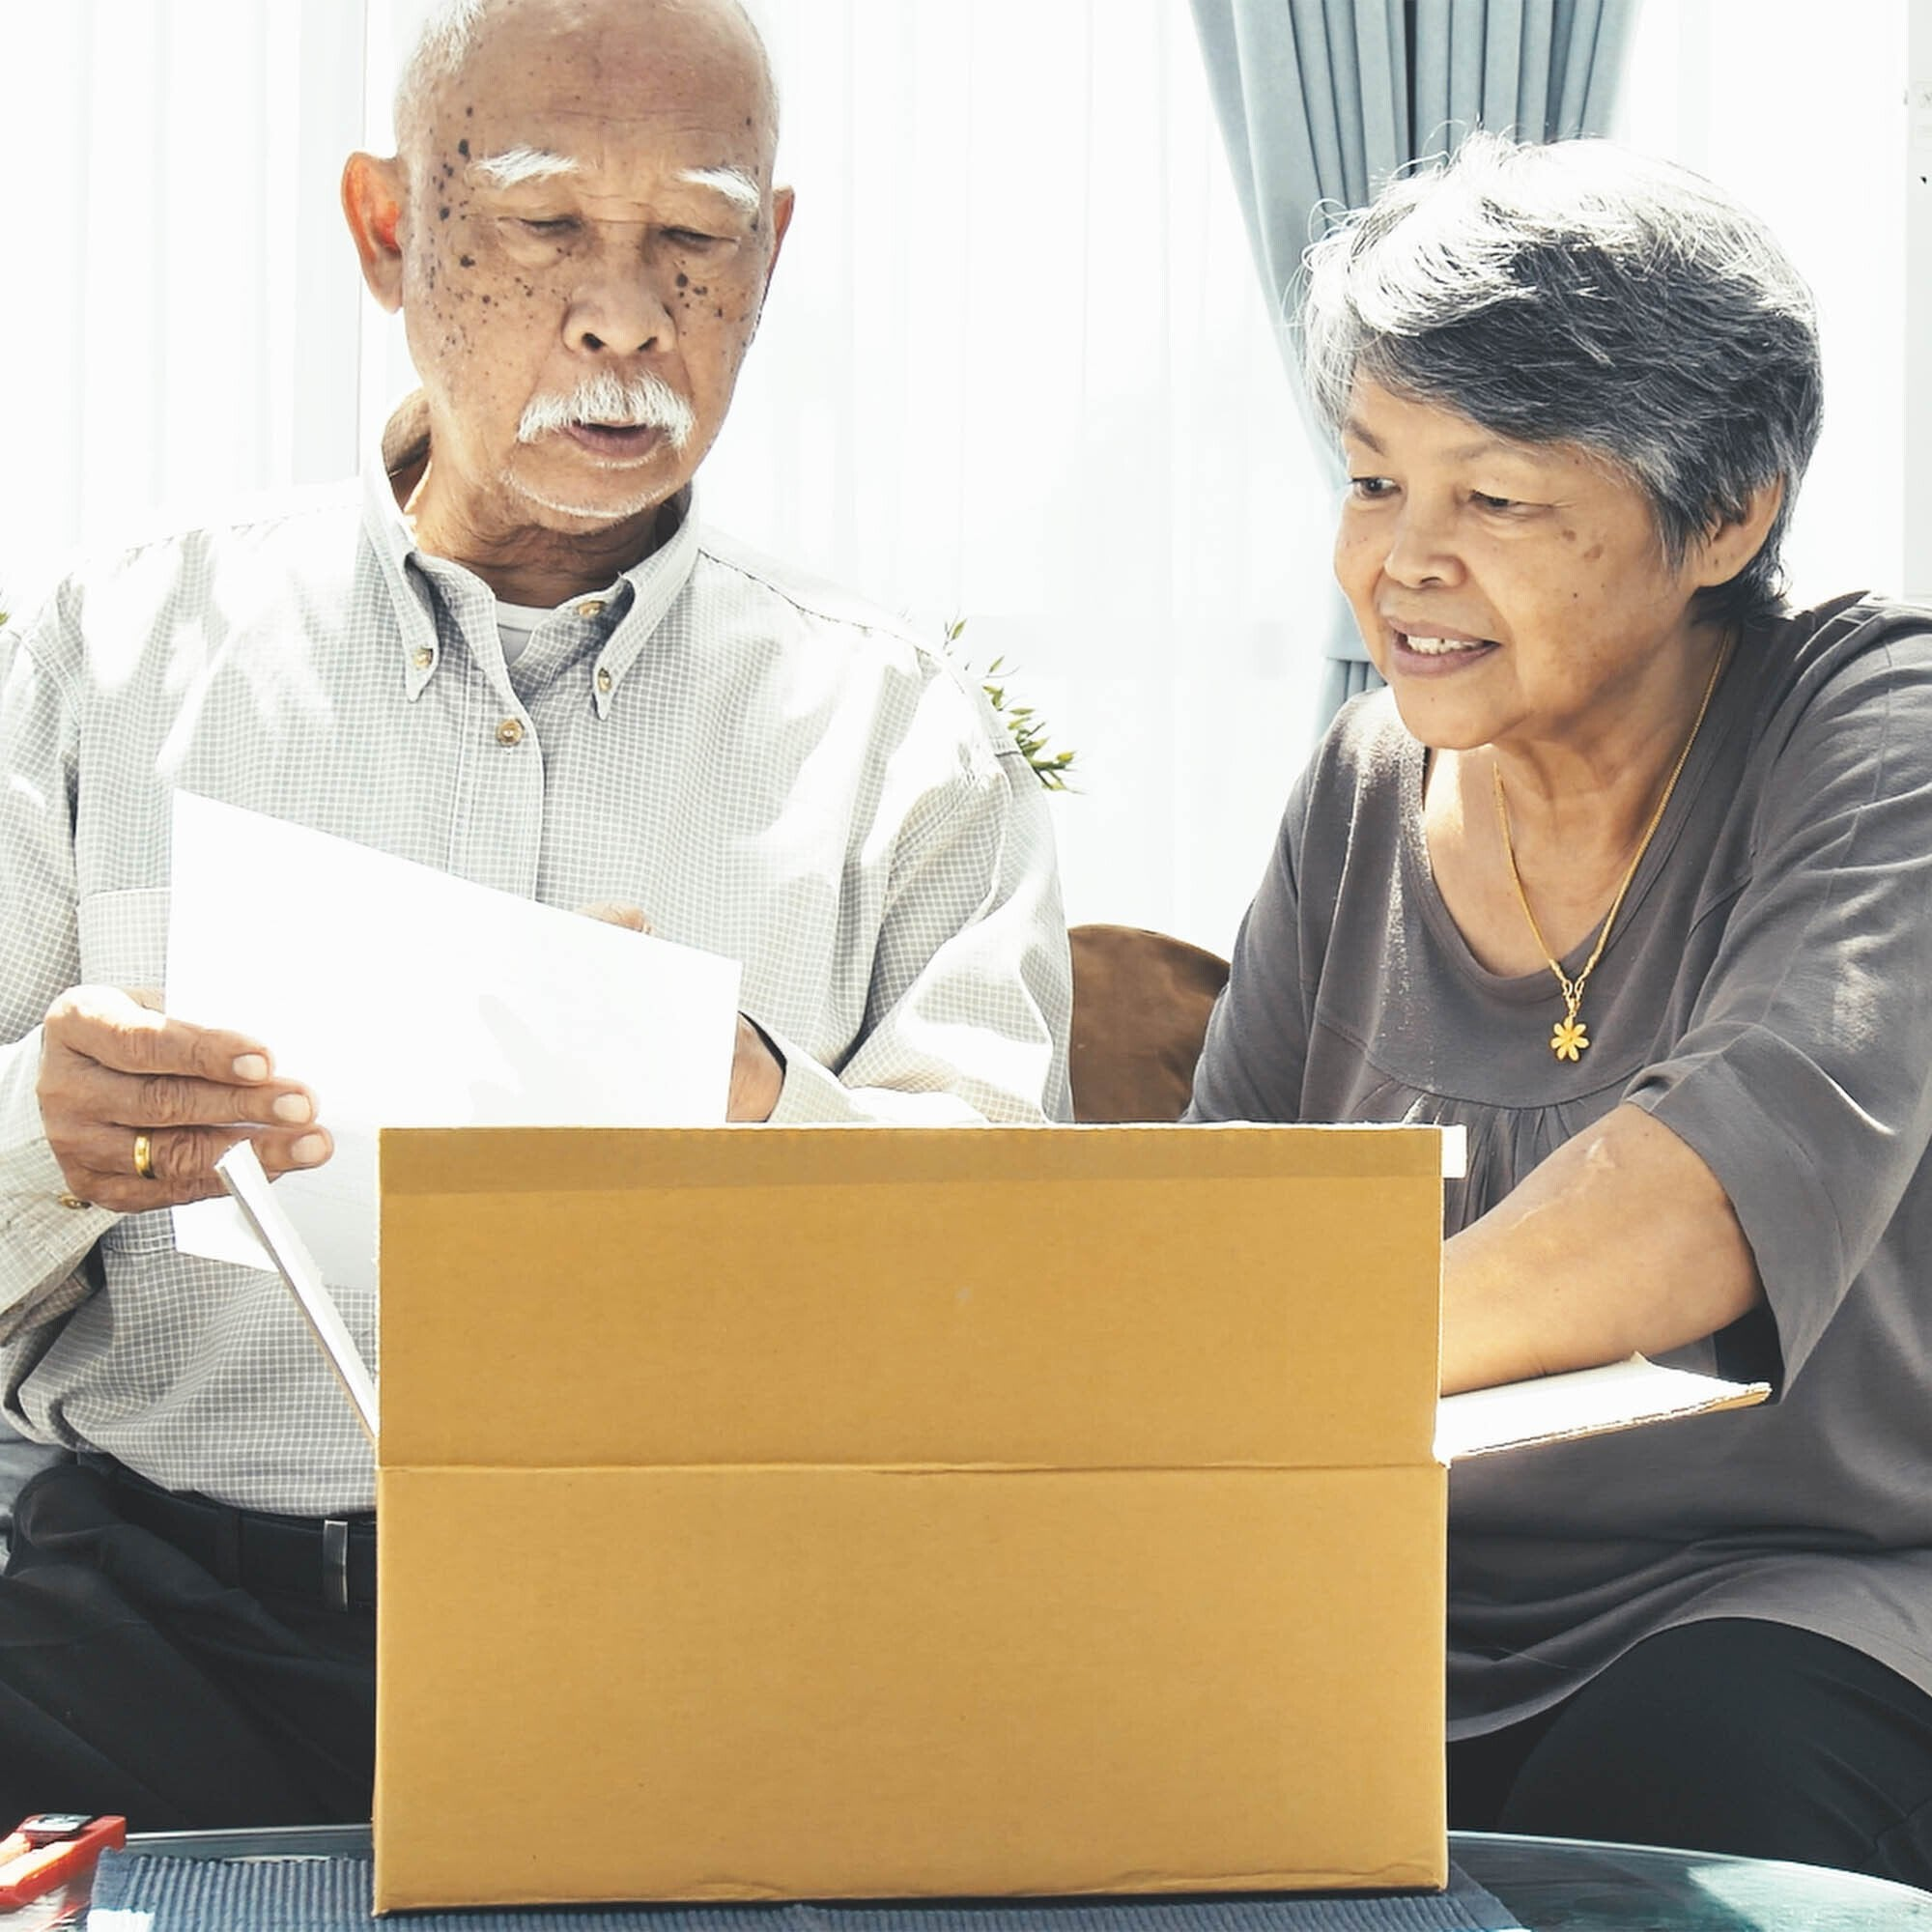 Man and woman open box of supplies